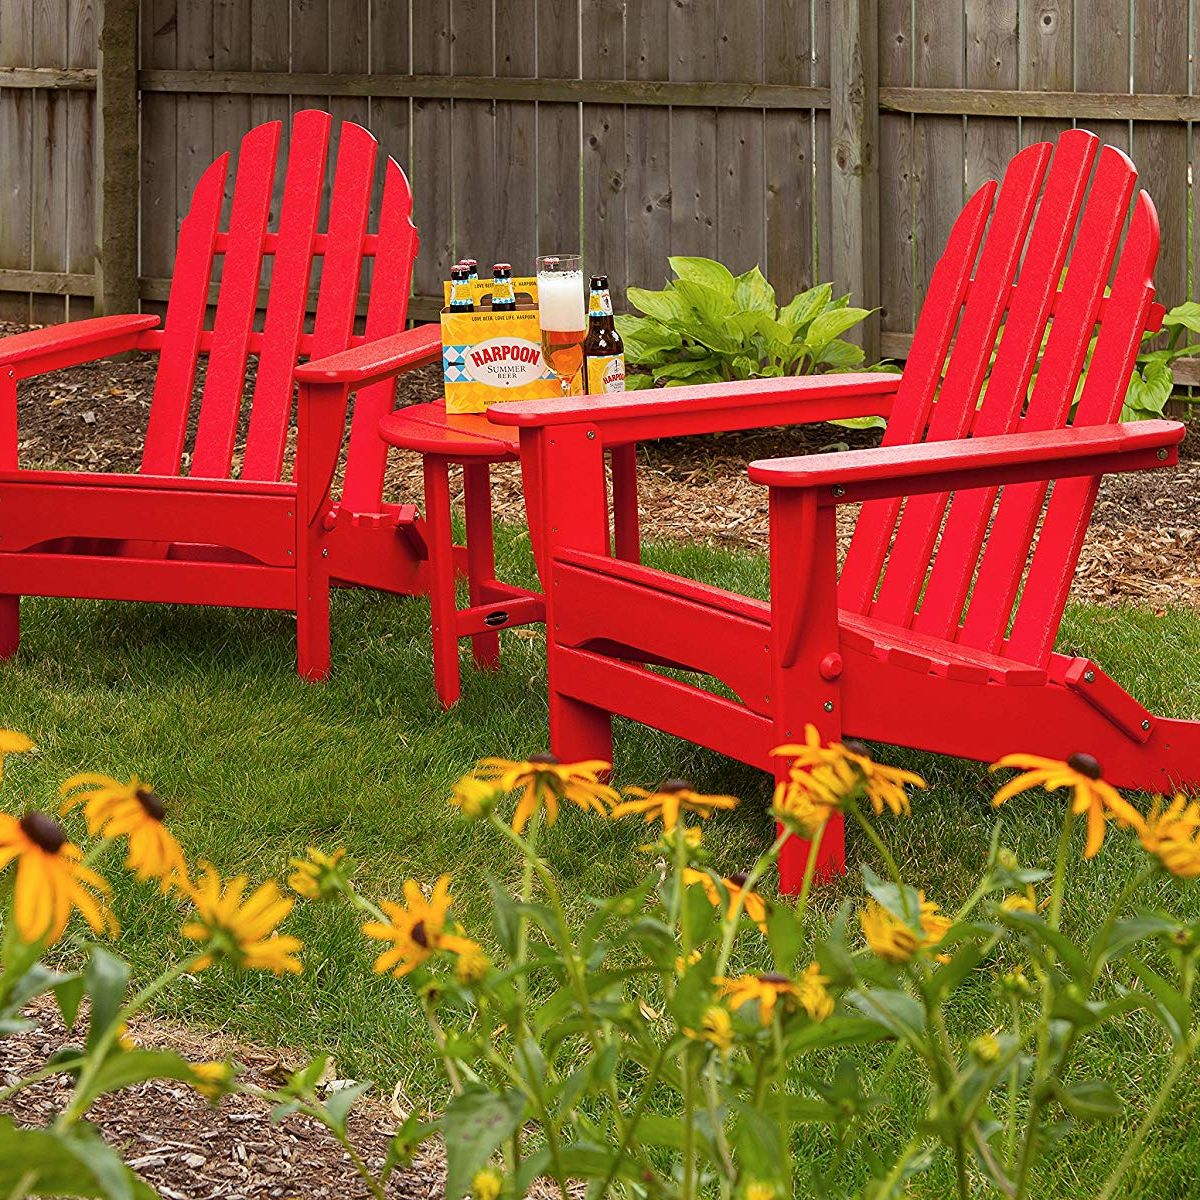 Swell 12 Best Lawn Chairs To Buy 2019 Interior Design Ideas Gentotryabchikinfo